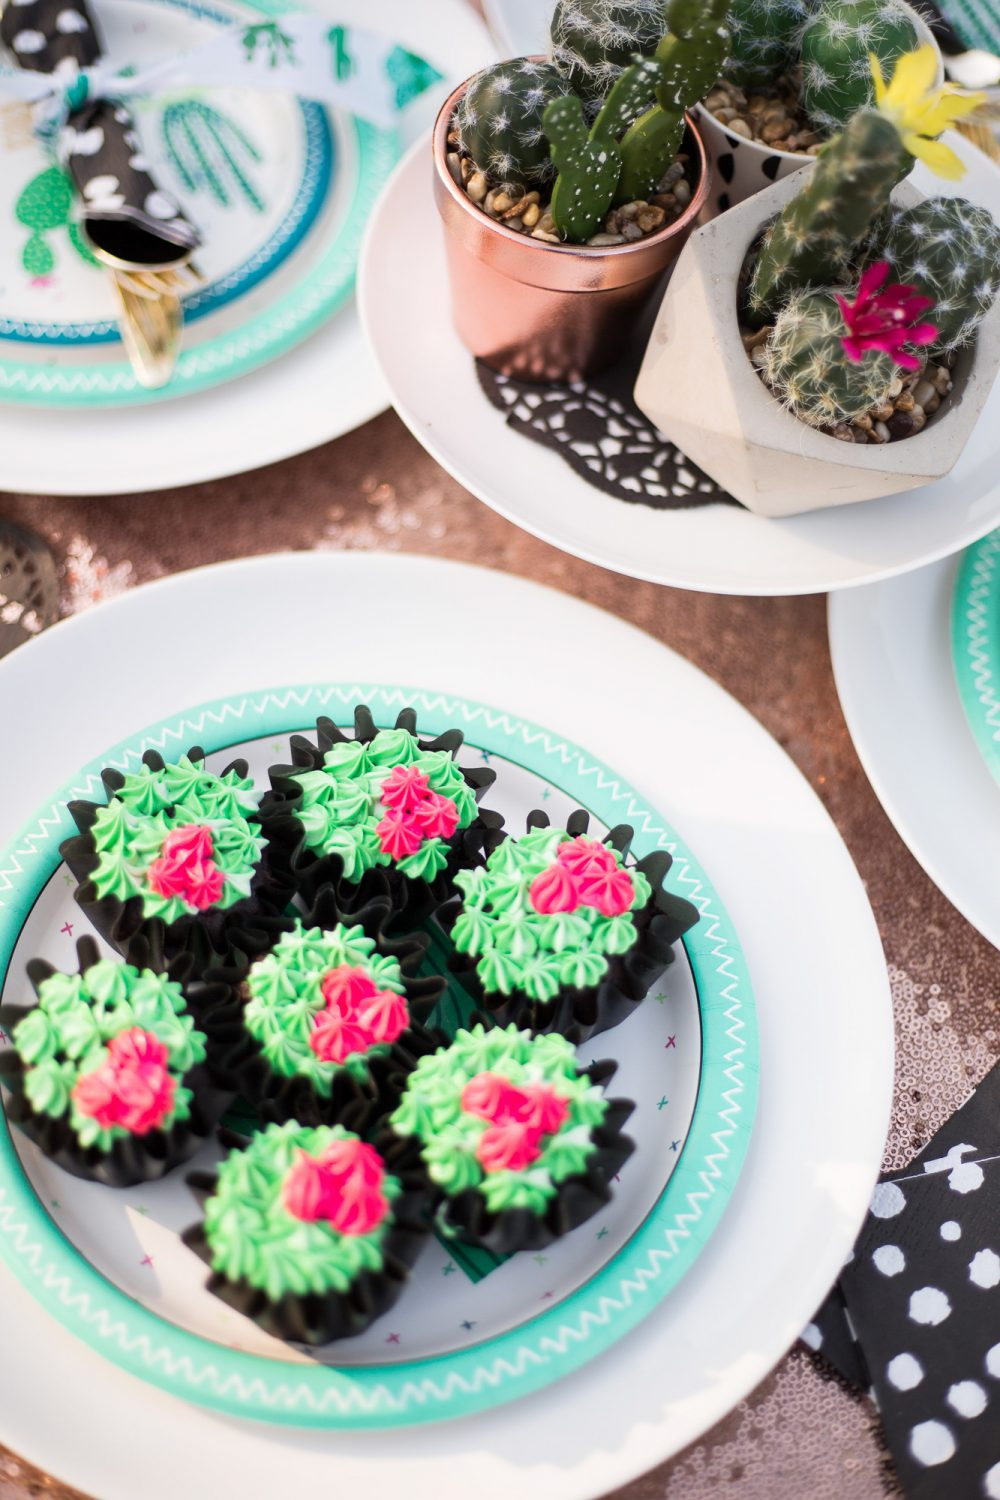 Adorable little succulent inspired cupcakes! Cute little tea party decor.